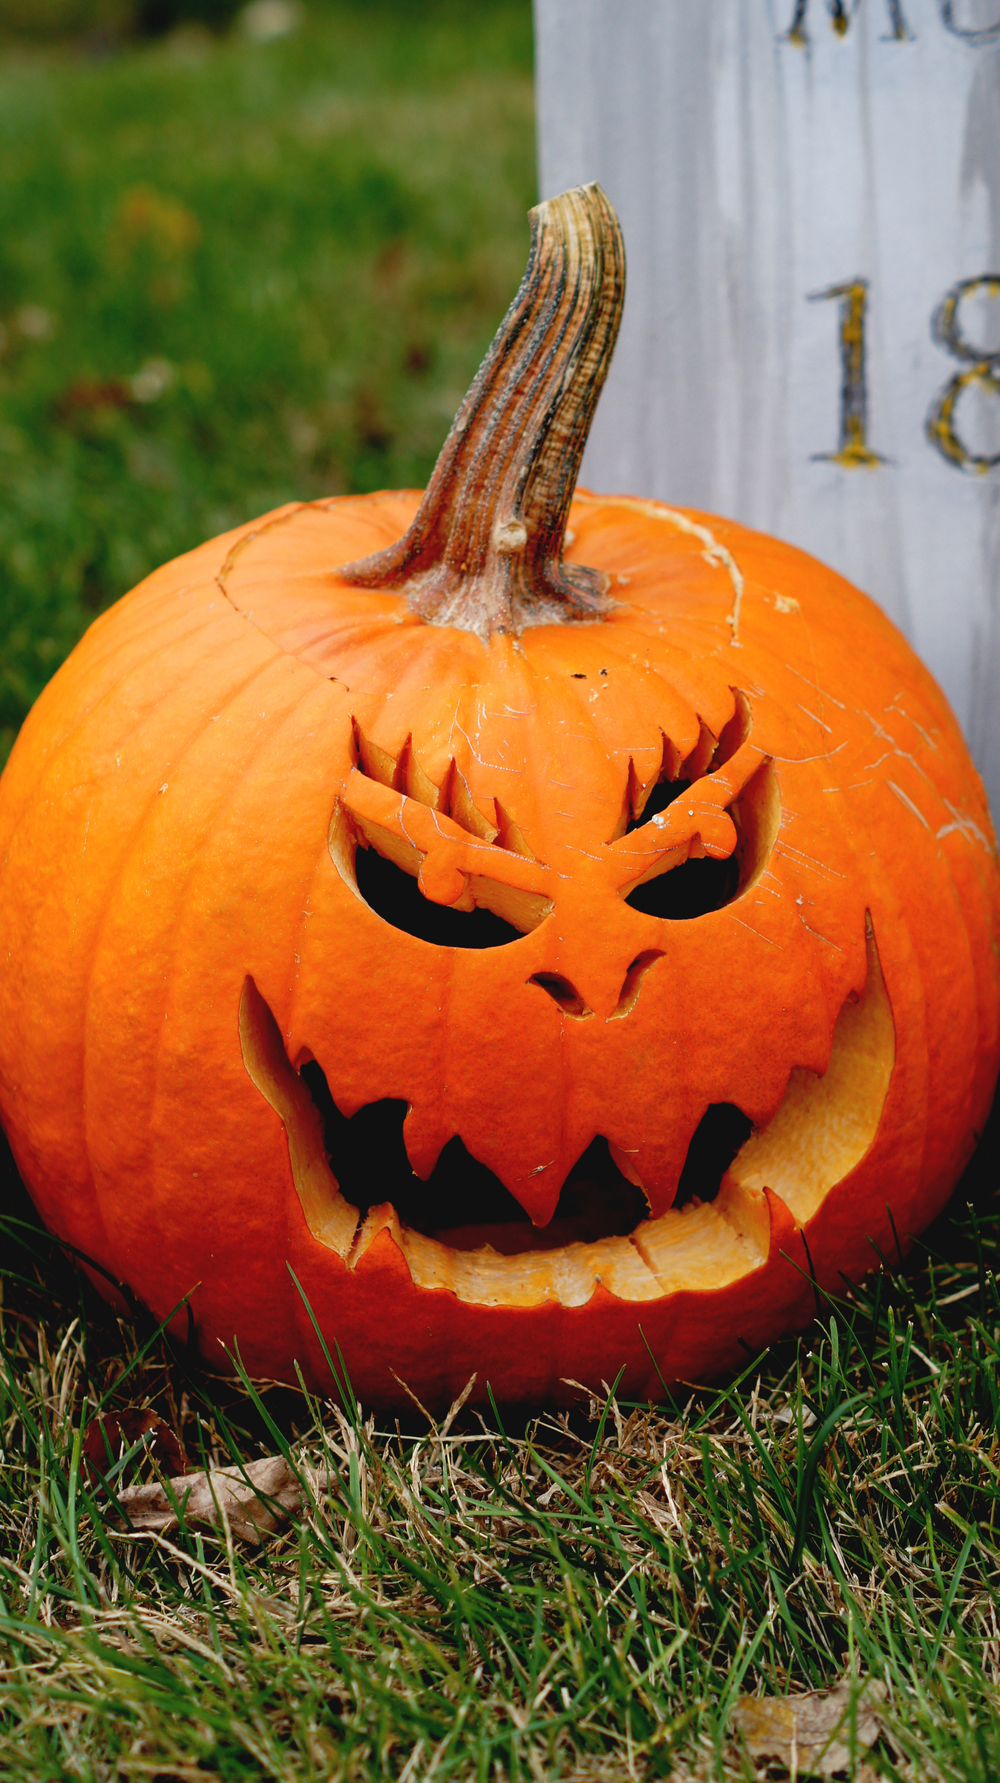 Carved Pumpkin 12.jpg